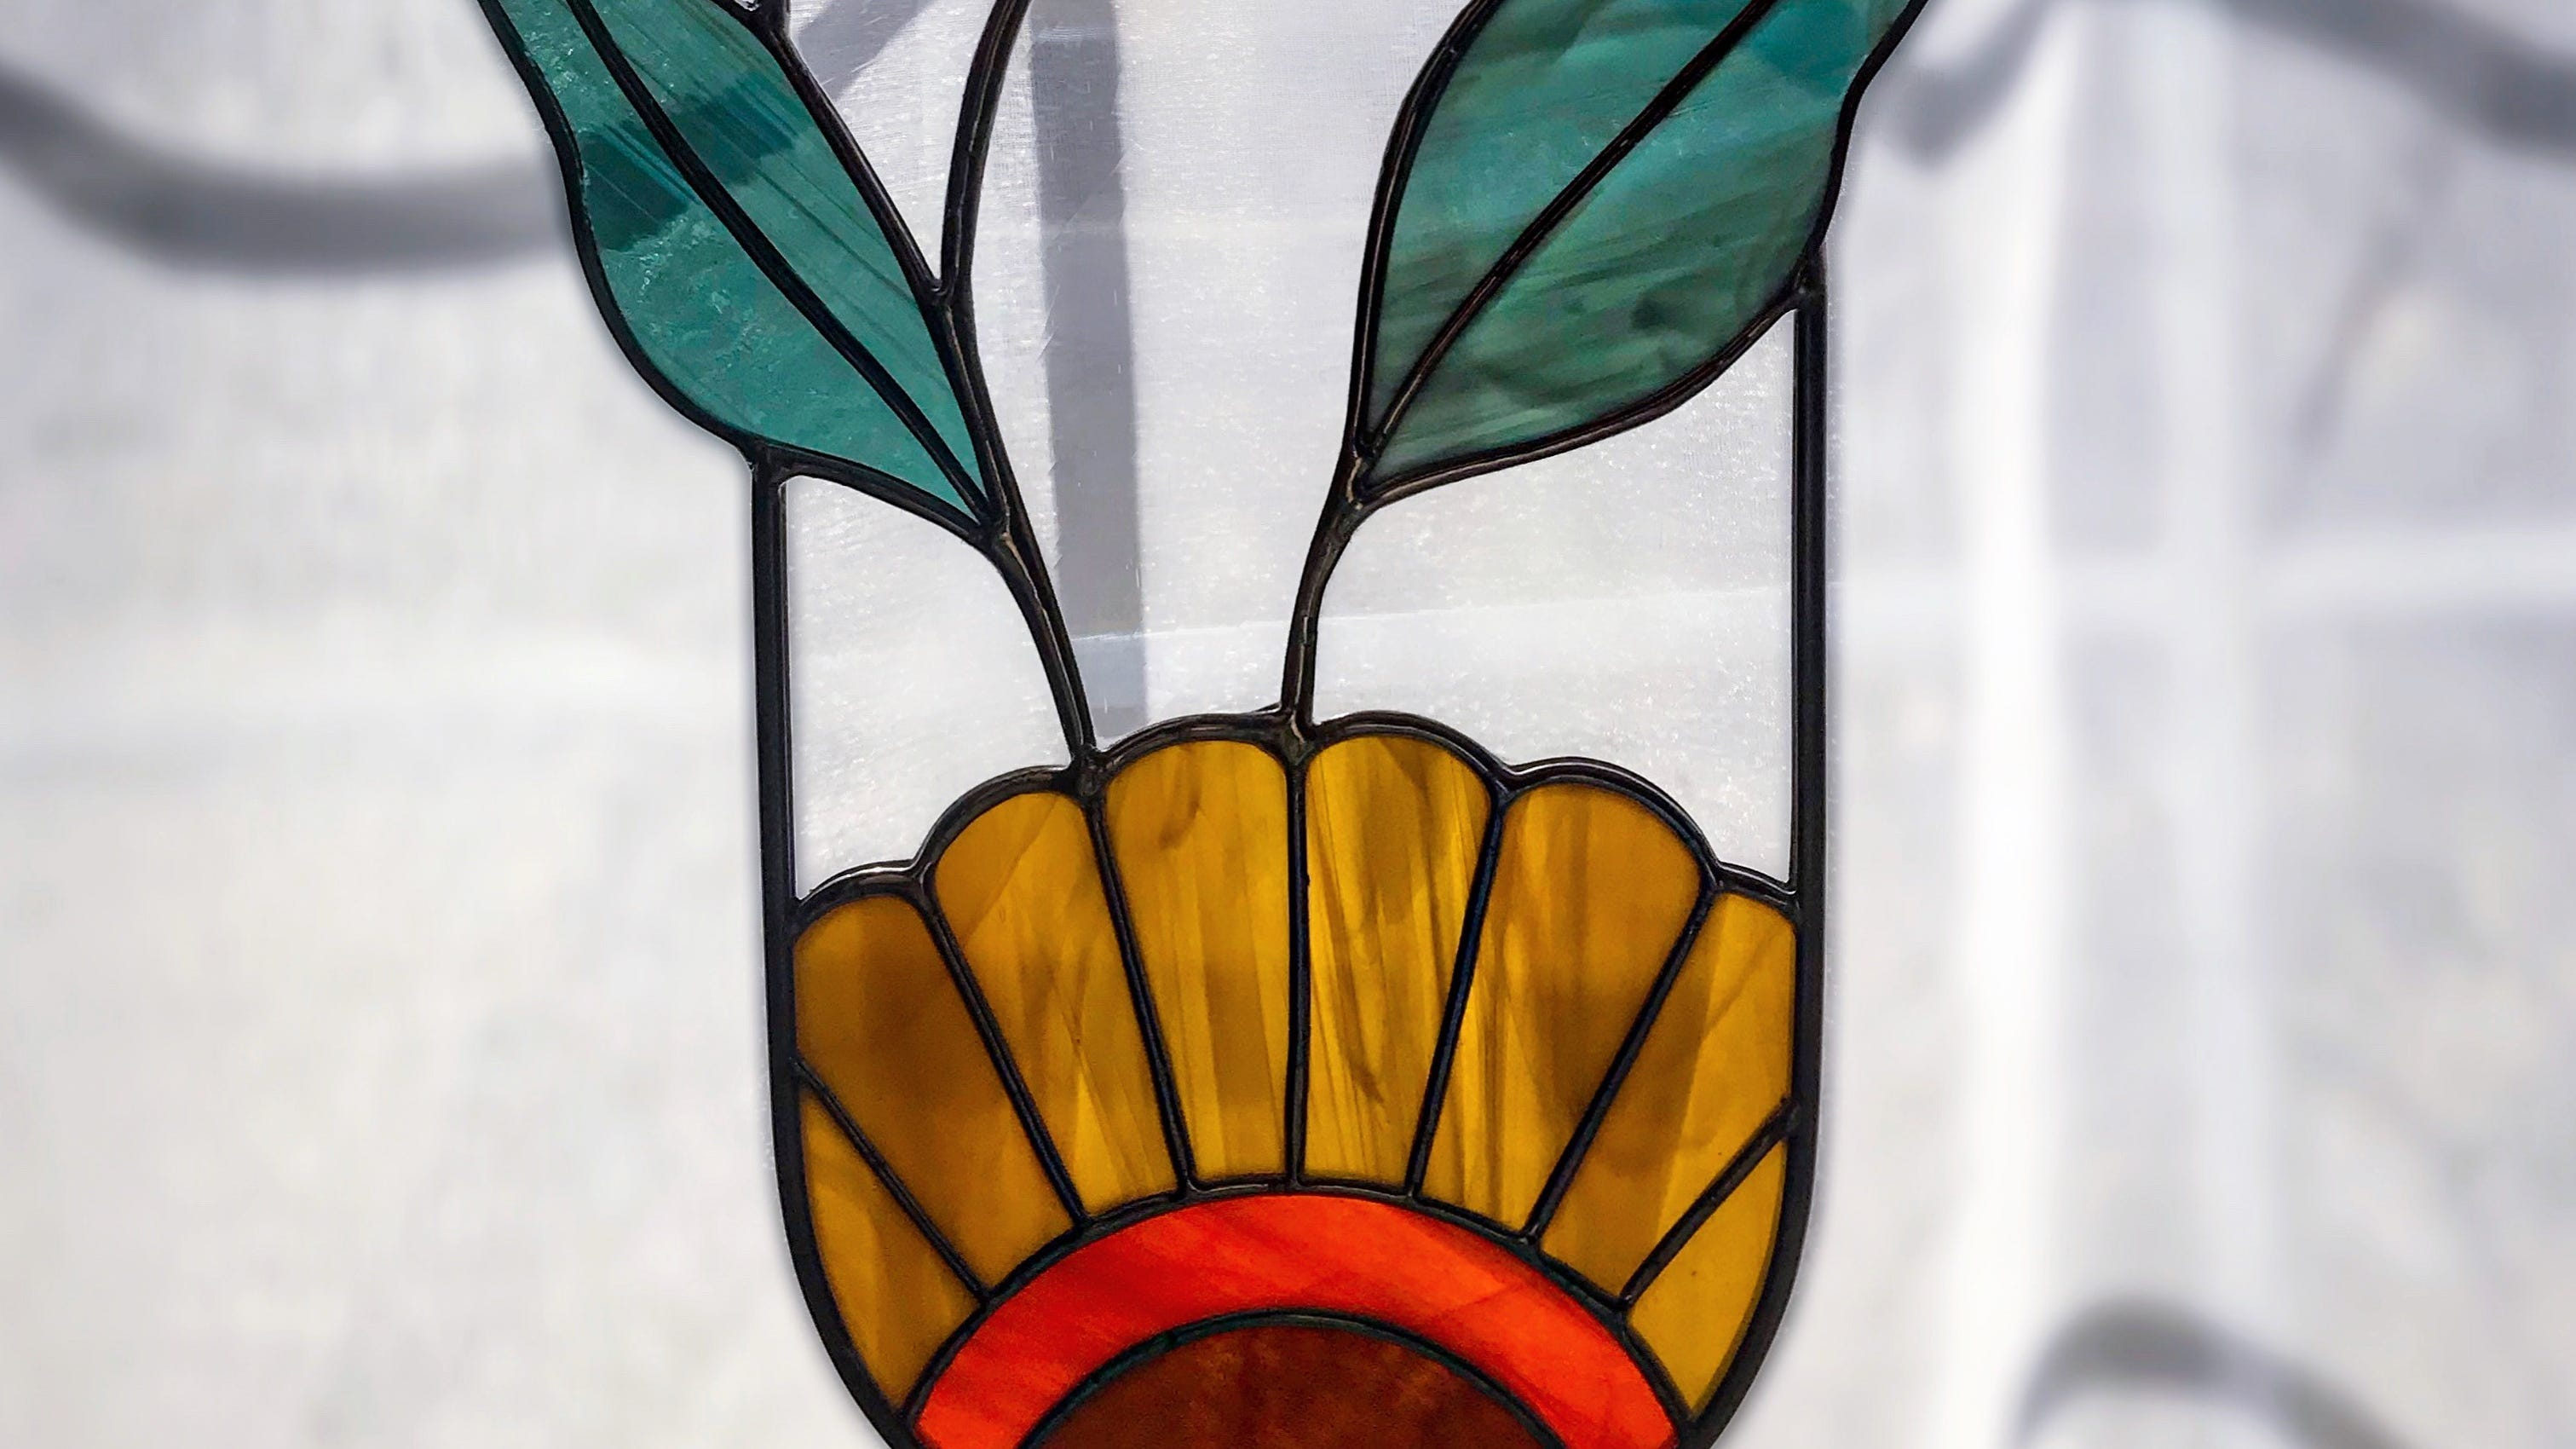 Gold Fever Glass Co. makes stained glass hangings to hang in your favorite window.